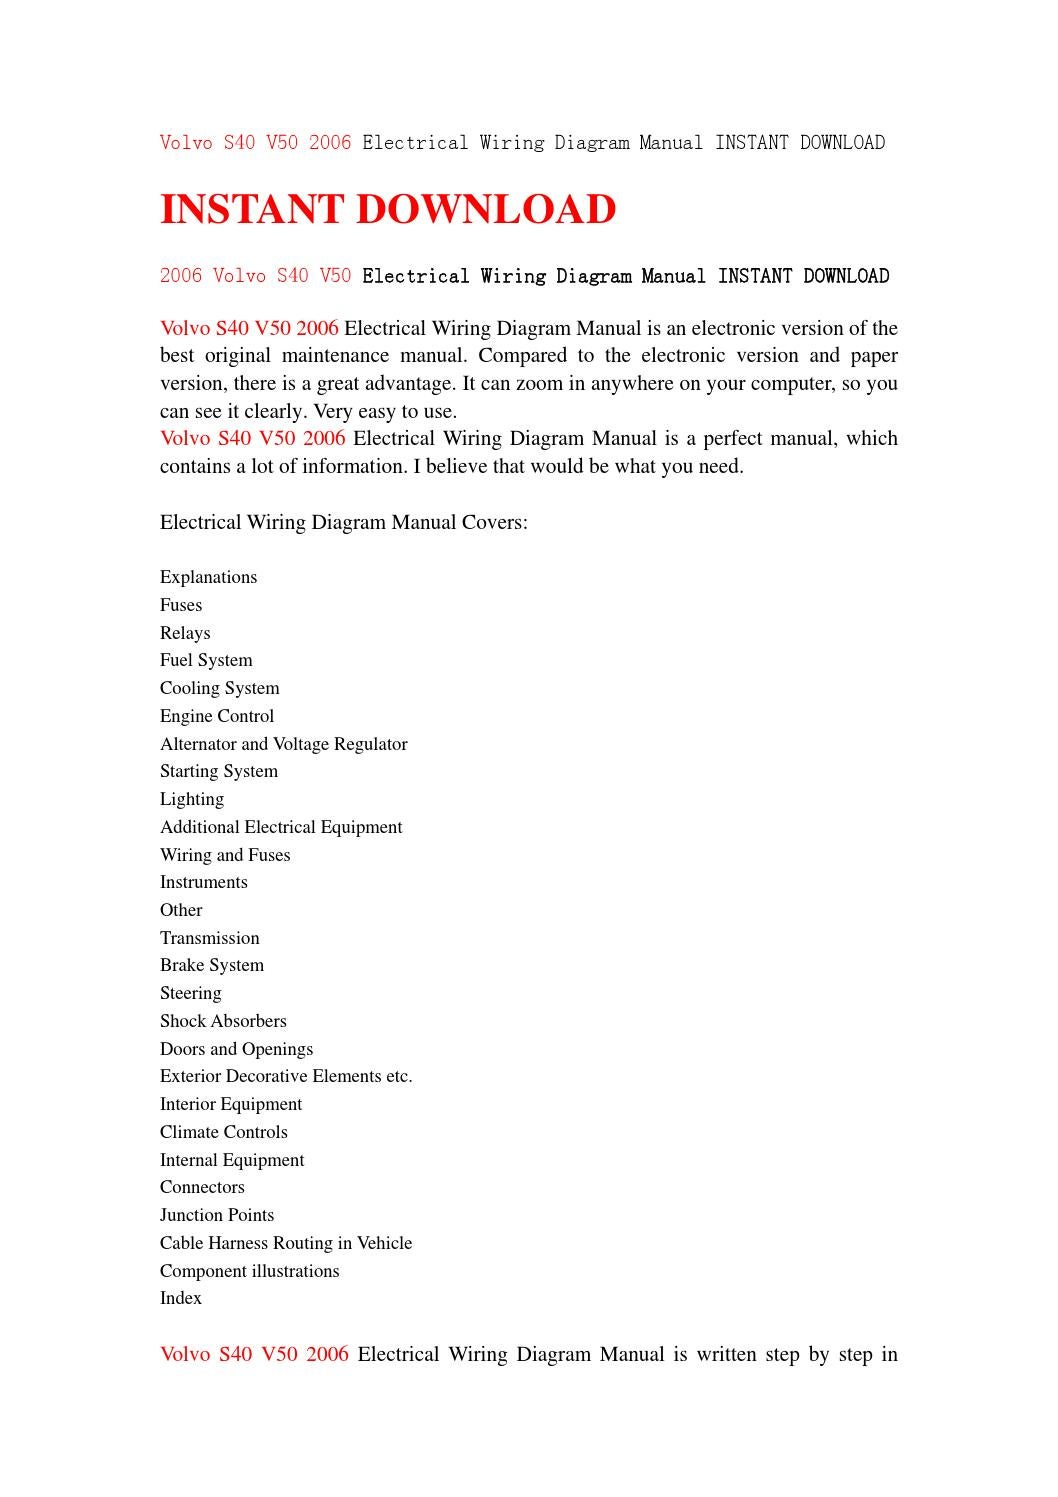 Volvo S40 V50 2006 Electrical Wiring Diagram Manual Instant Download By Servicemanuald89s